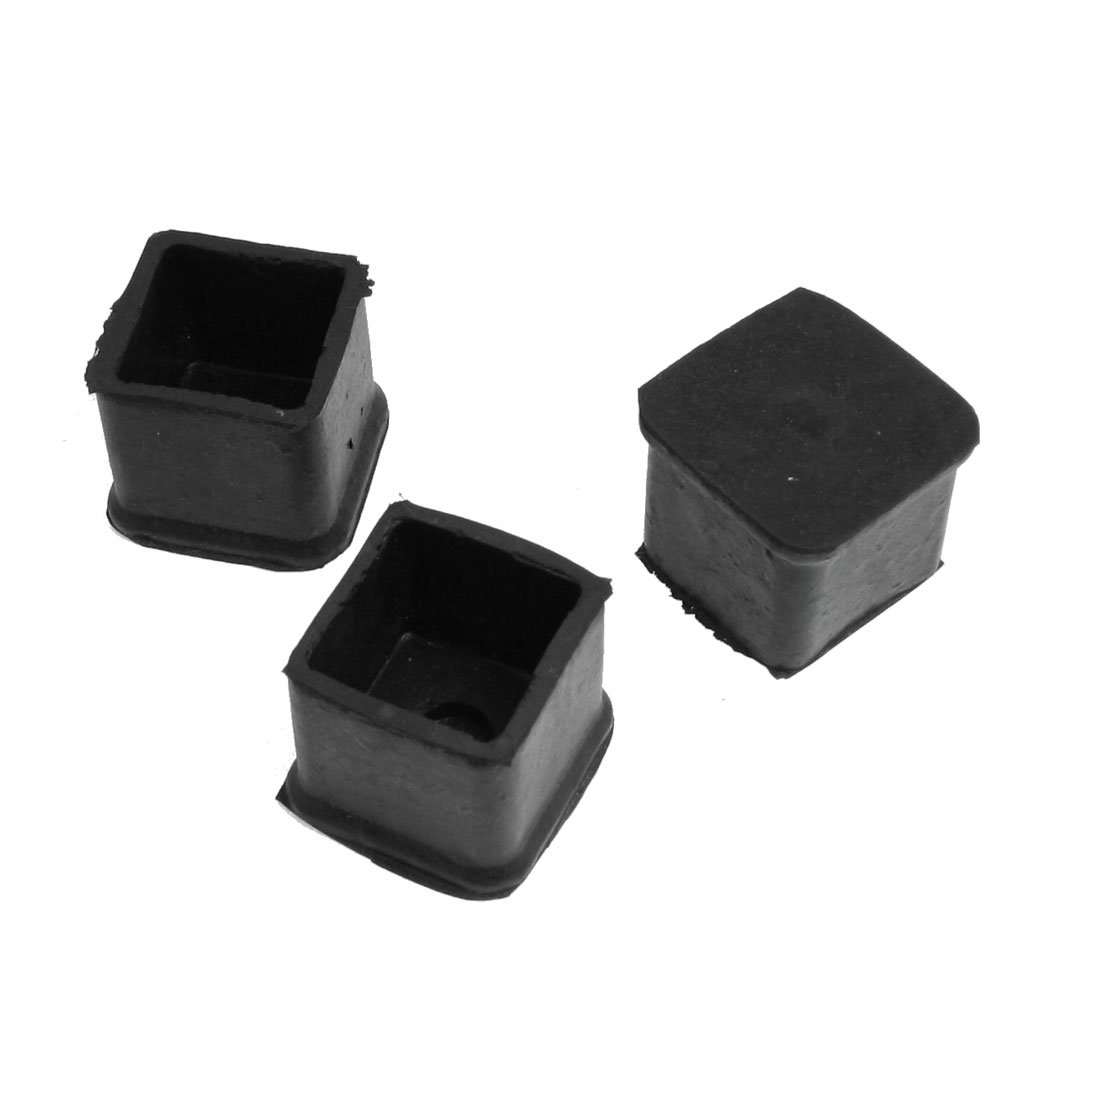 3 Pieces Black Squared Shaped Rubber Furniture Foot Protector